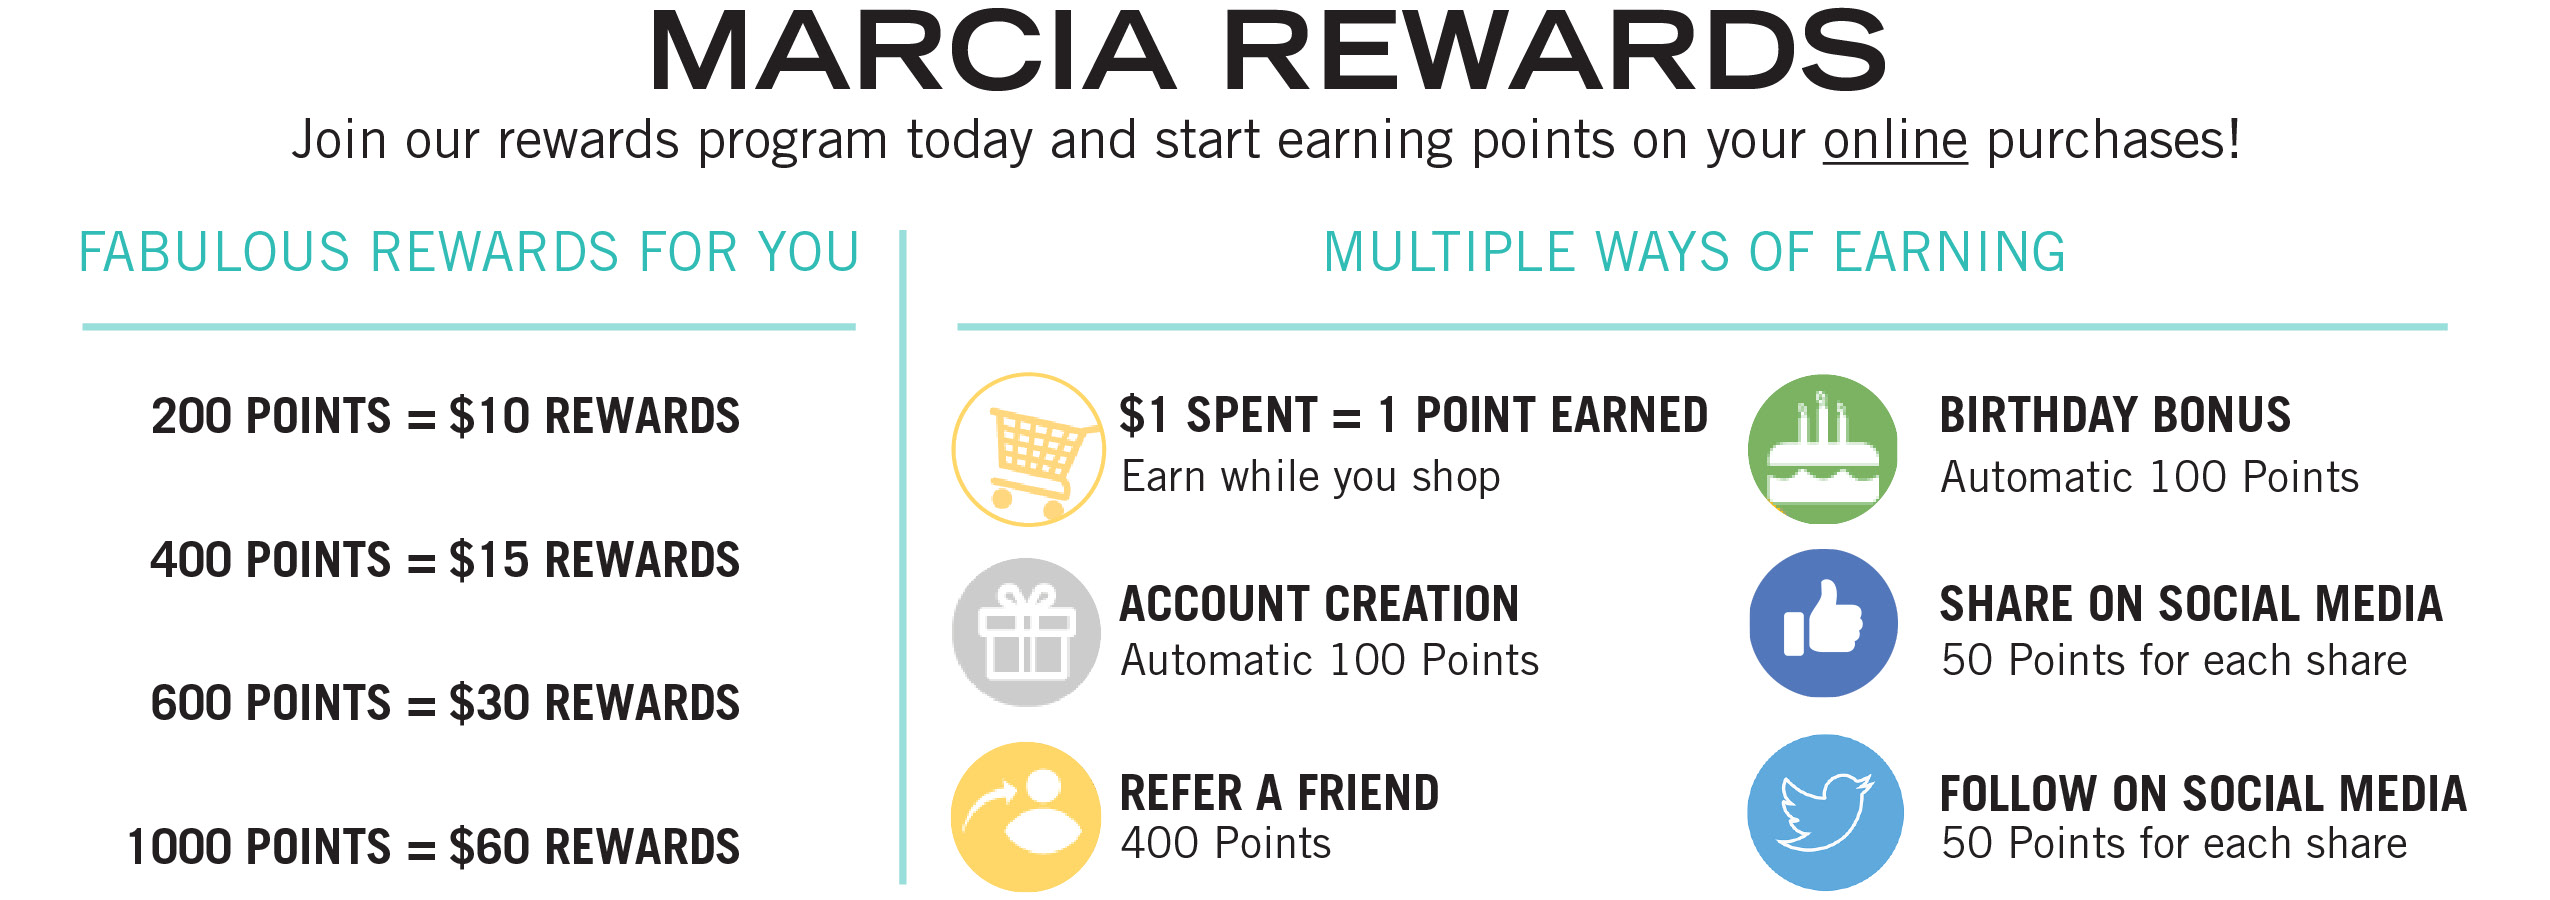 rewards-programr2.jpg